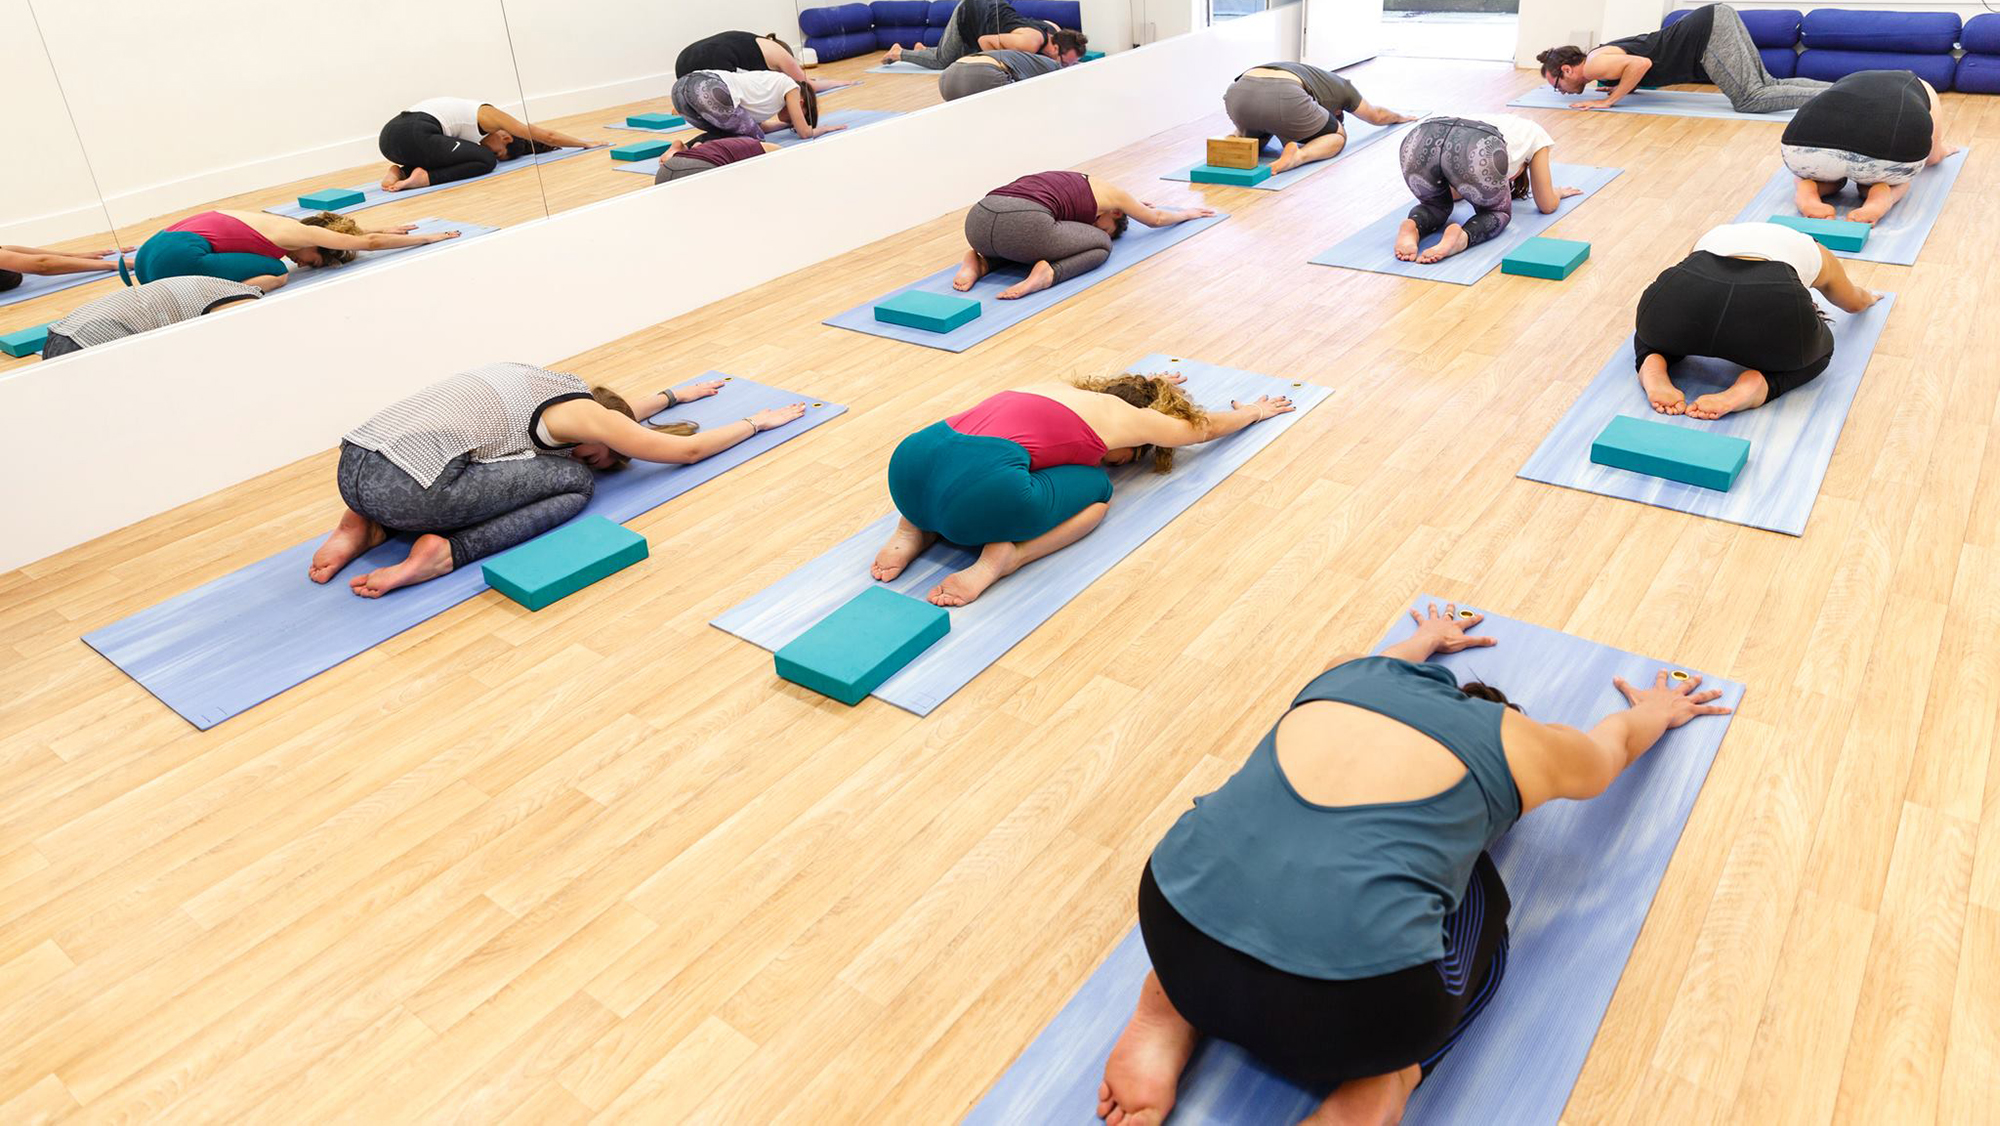 Beginners Yoga - Date: 23–24 March, 2019 (Saturday & Sunday)Time: 3–5pmPrice: £45 per personTwo day workshop designed for those looking to create consistency and strong foundations in their yoga practice. Sessions cover yoga asana, pranayama (breathing techniques) and meditation. Suitable for complete beginners, or experienced practitioners looking to revisit yoga fundamentals.